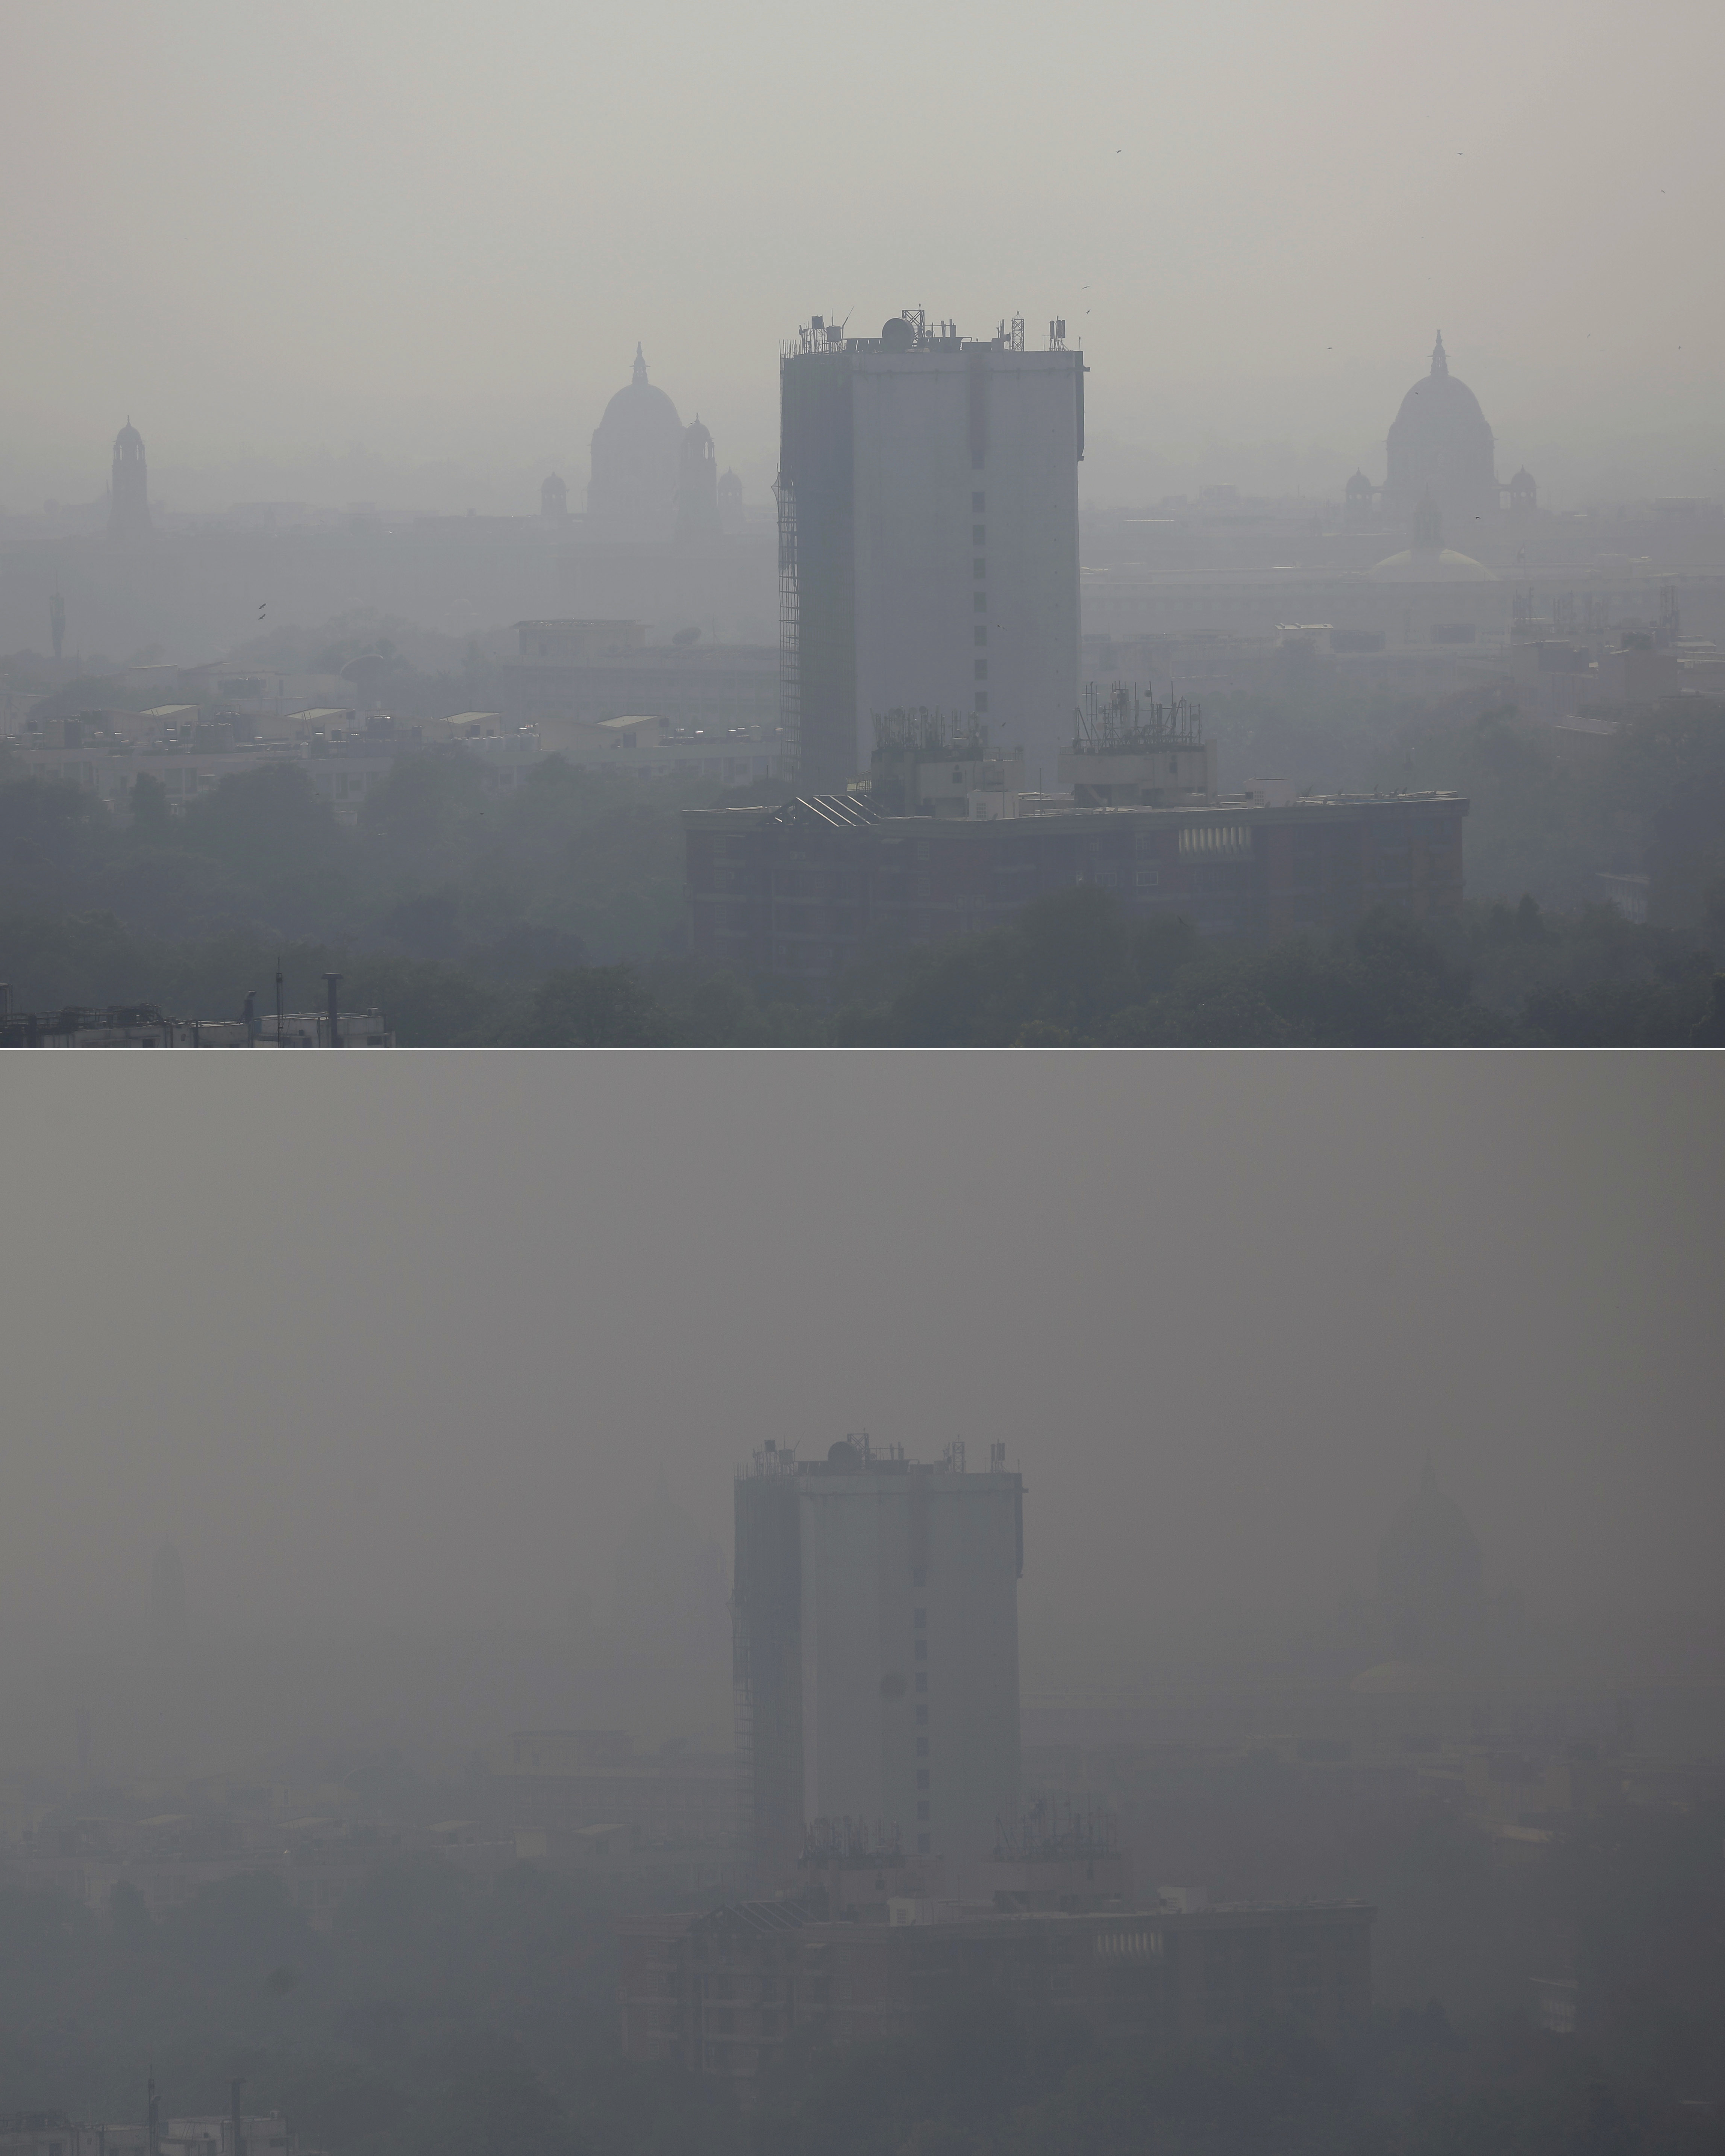 In this combination of two photos, the New Delhi skyline is seen enveloped in smog on Friday, Oct. 28, 2016, top, and a day after Diwali festival on Monday, Oct. 31, 2016, bottom. As Indians wake Monday to smoke-filled skies from a weekend of festival fireworks for the Hindu holiday of Diwali, New Delhi's worst season for air pollution begins, with dire consequences. A new report from UNICEF says about a third of the 2 billion children in the world who are breathing toxic air live in northern India and neighboring countries, risking serious health effects including damage to their lungs, brains and other organs. (AP Photo/Altaf Qadri, top, and Tsering Topgyal, bottom)